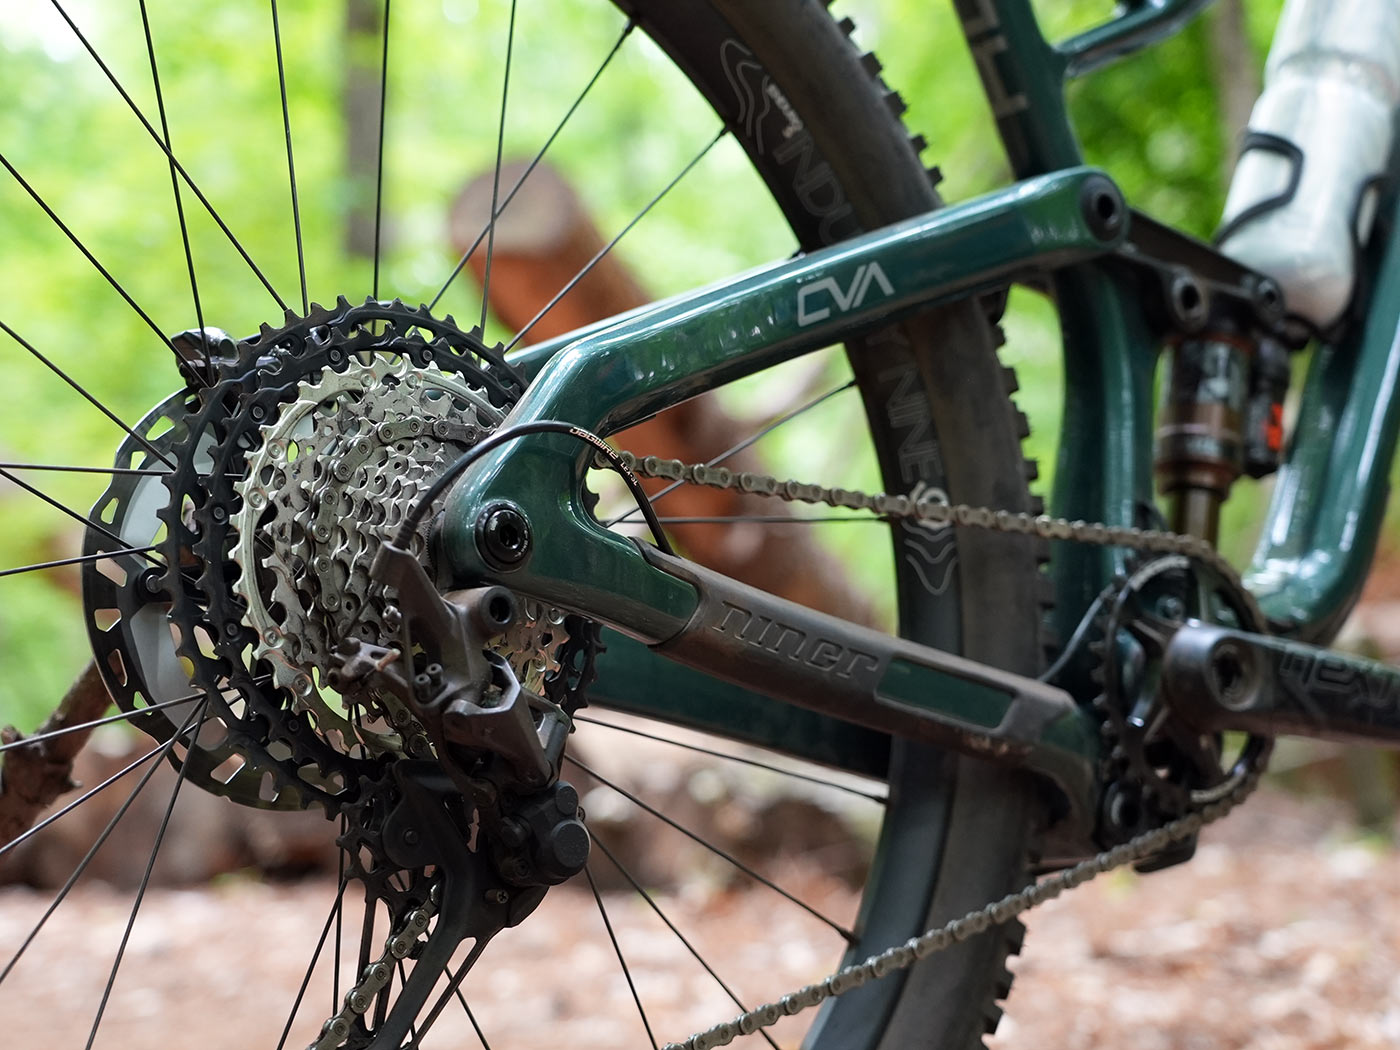 tech details and closeup rear triangle photos of the 2022 niner jet 9 rdo trail mountain bike